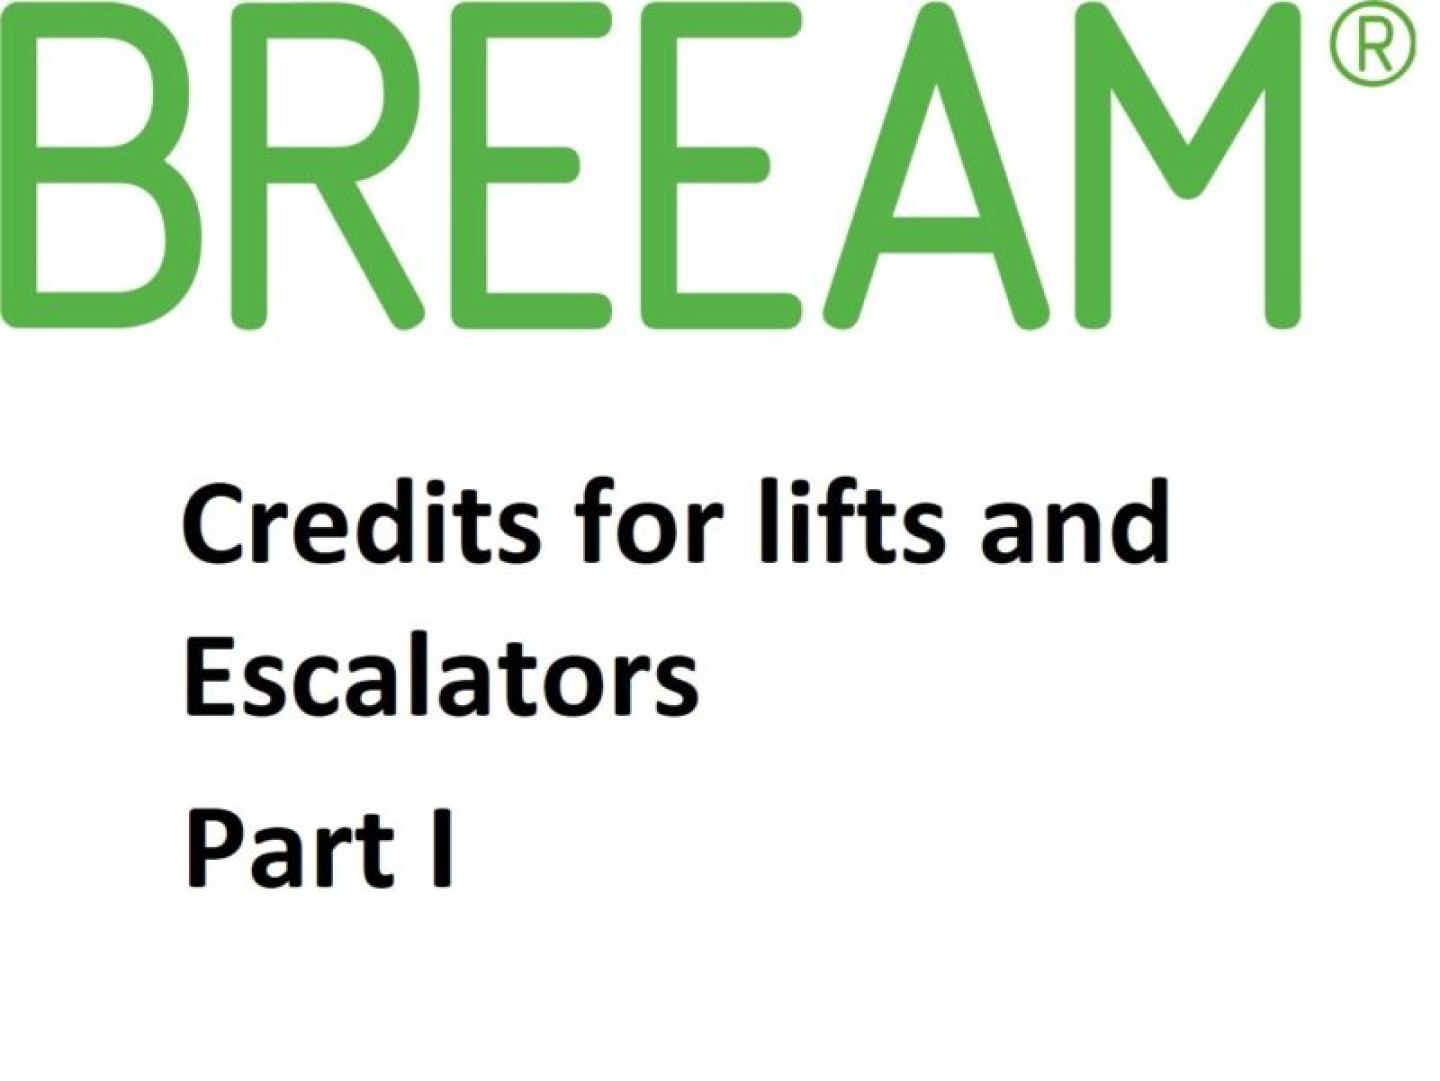 BREEAM Credits for Lifts Part I